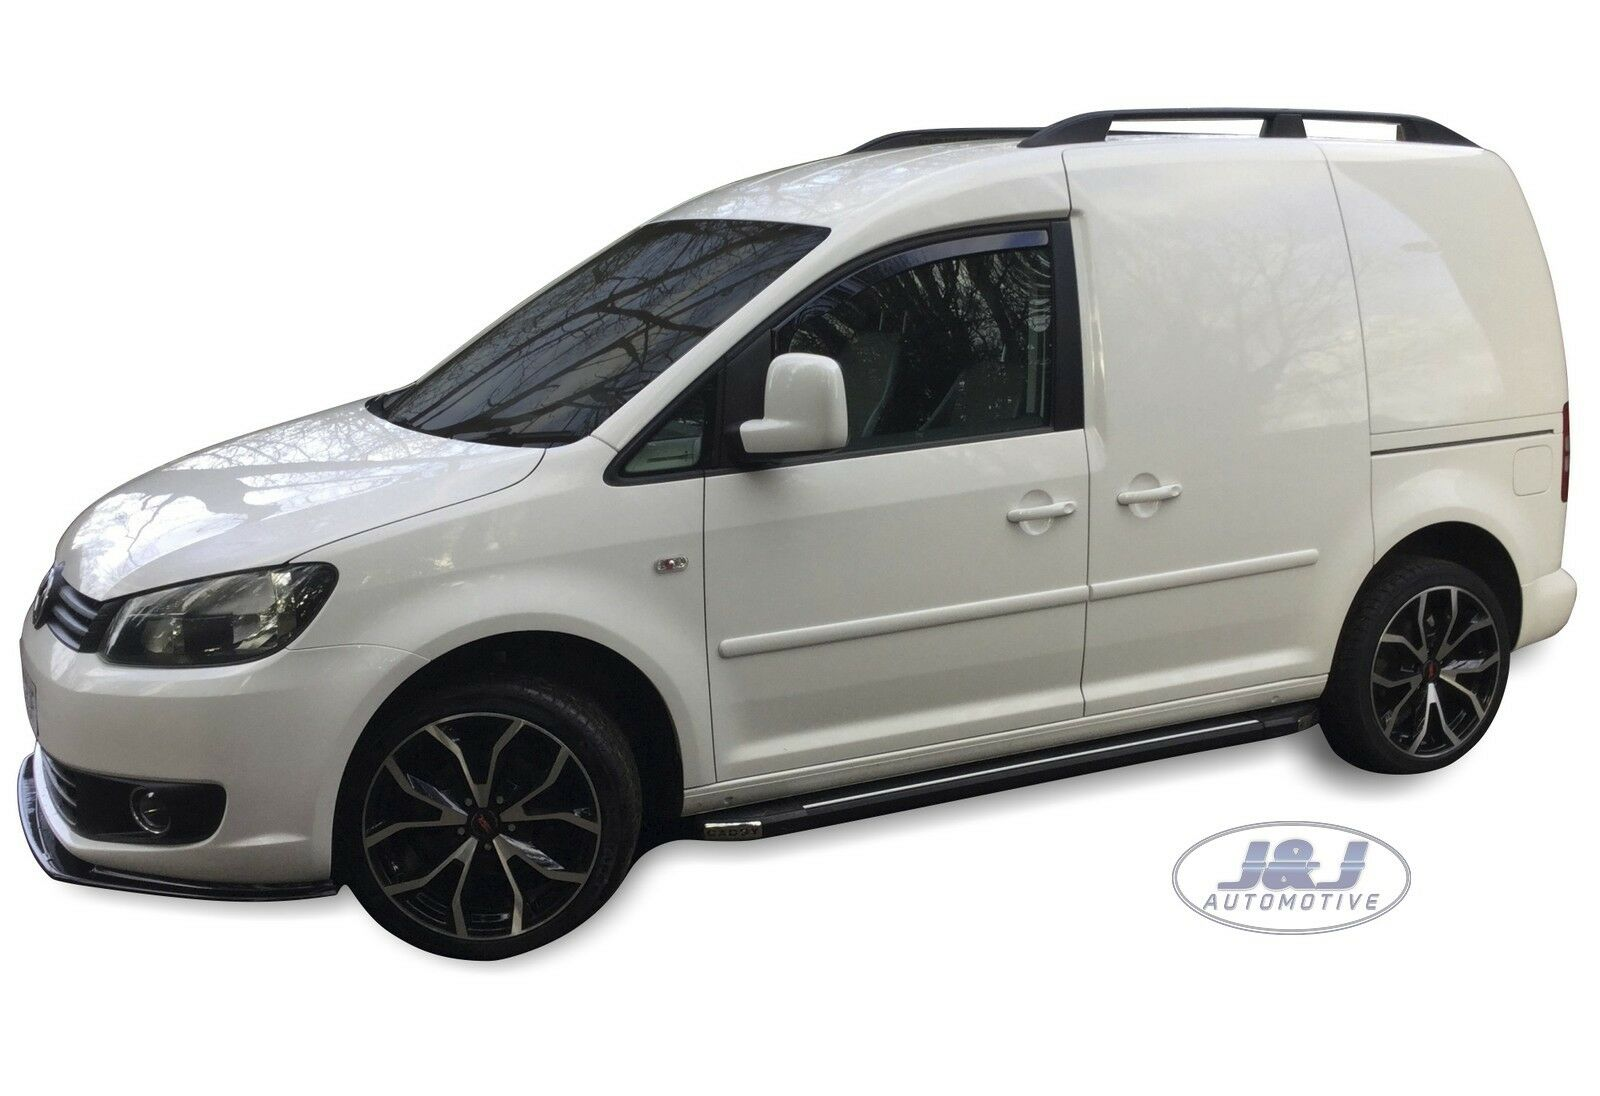 VW CADDY WIND DEFLECTORS DARK TINT FRONT LEFT AND FRONT RIGHT 2005 ON SET OF 2